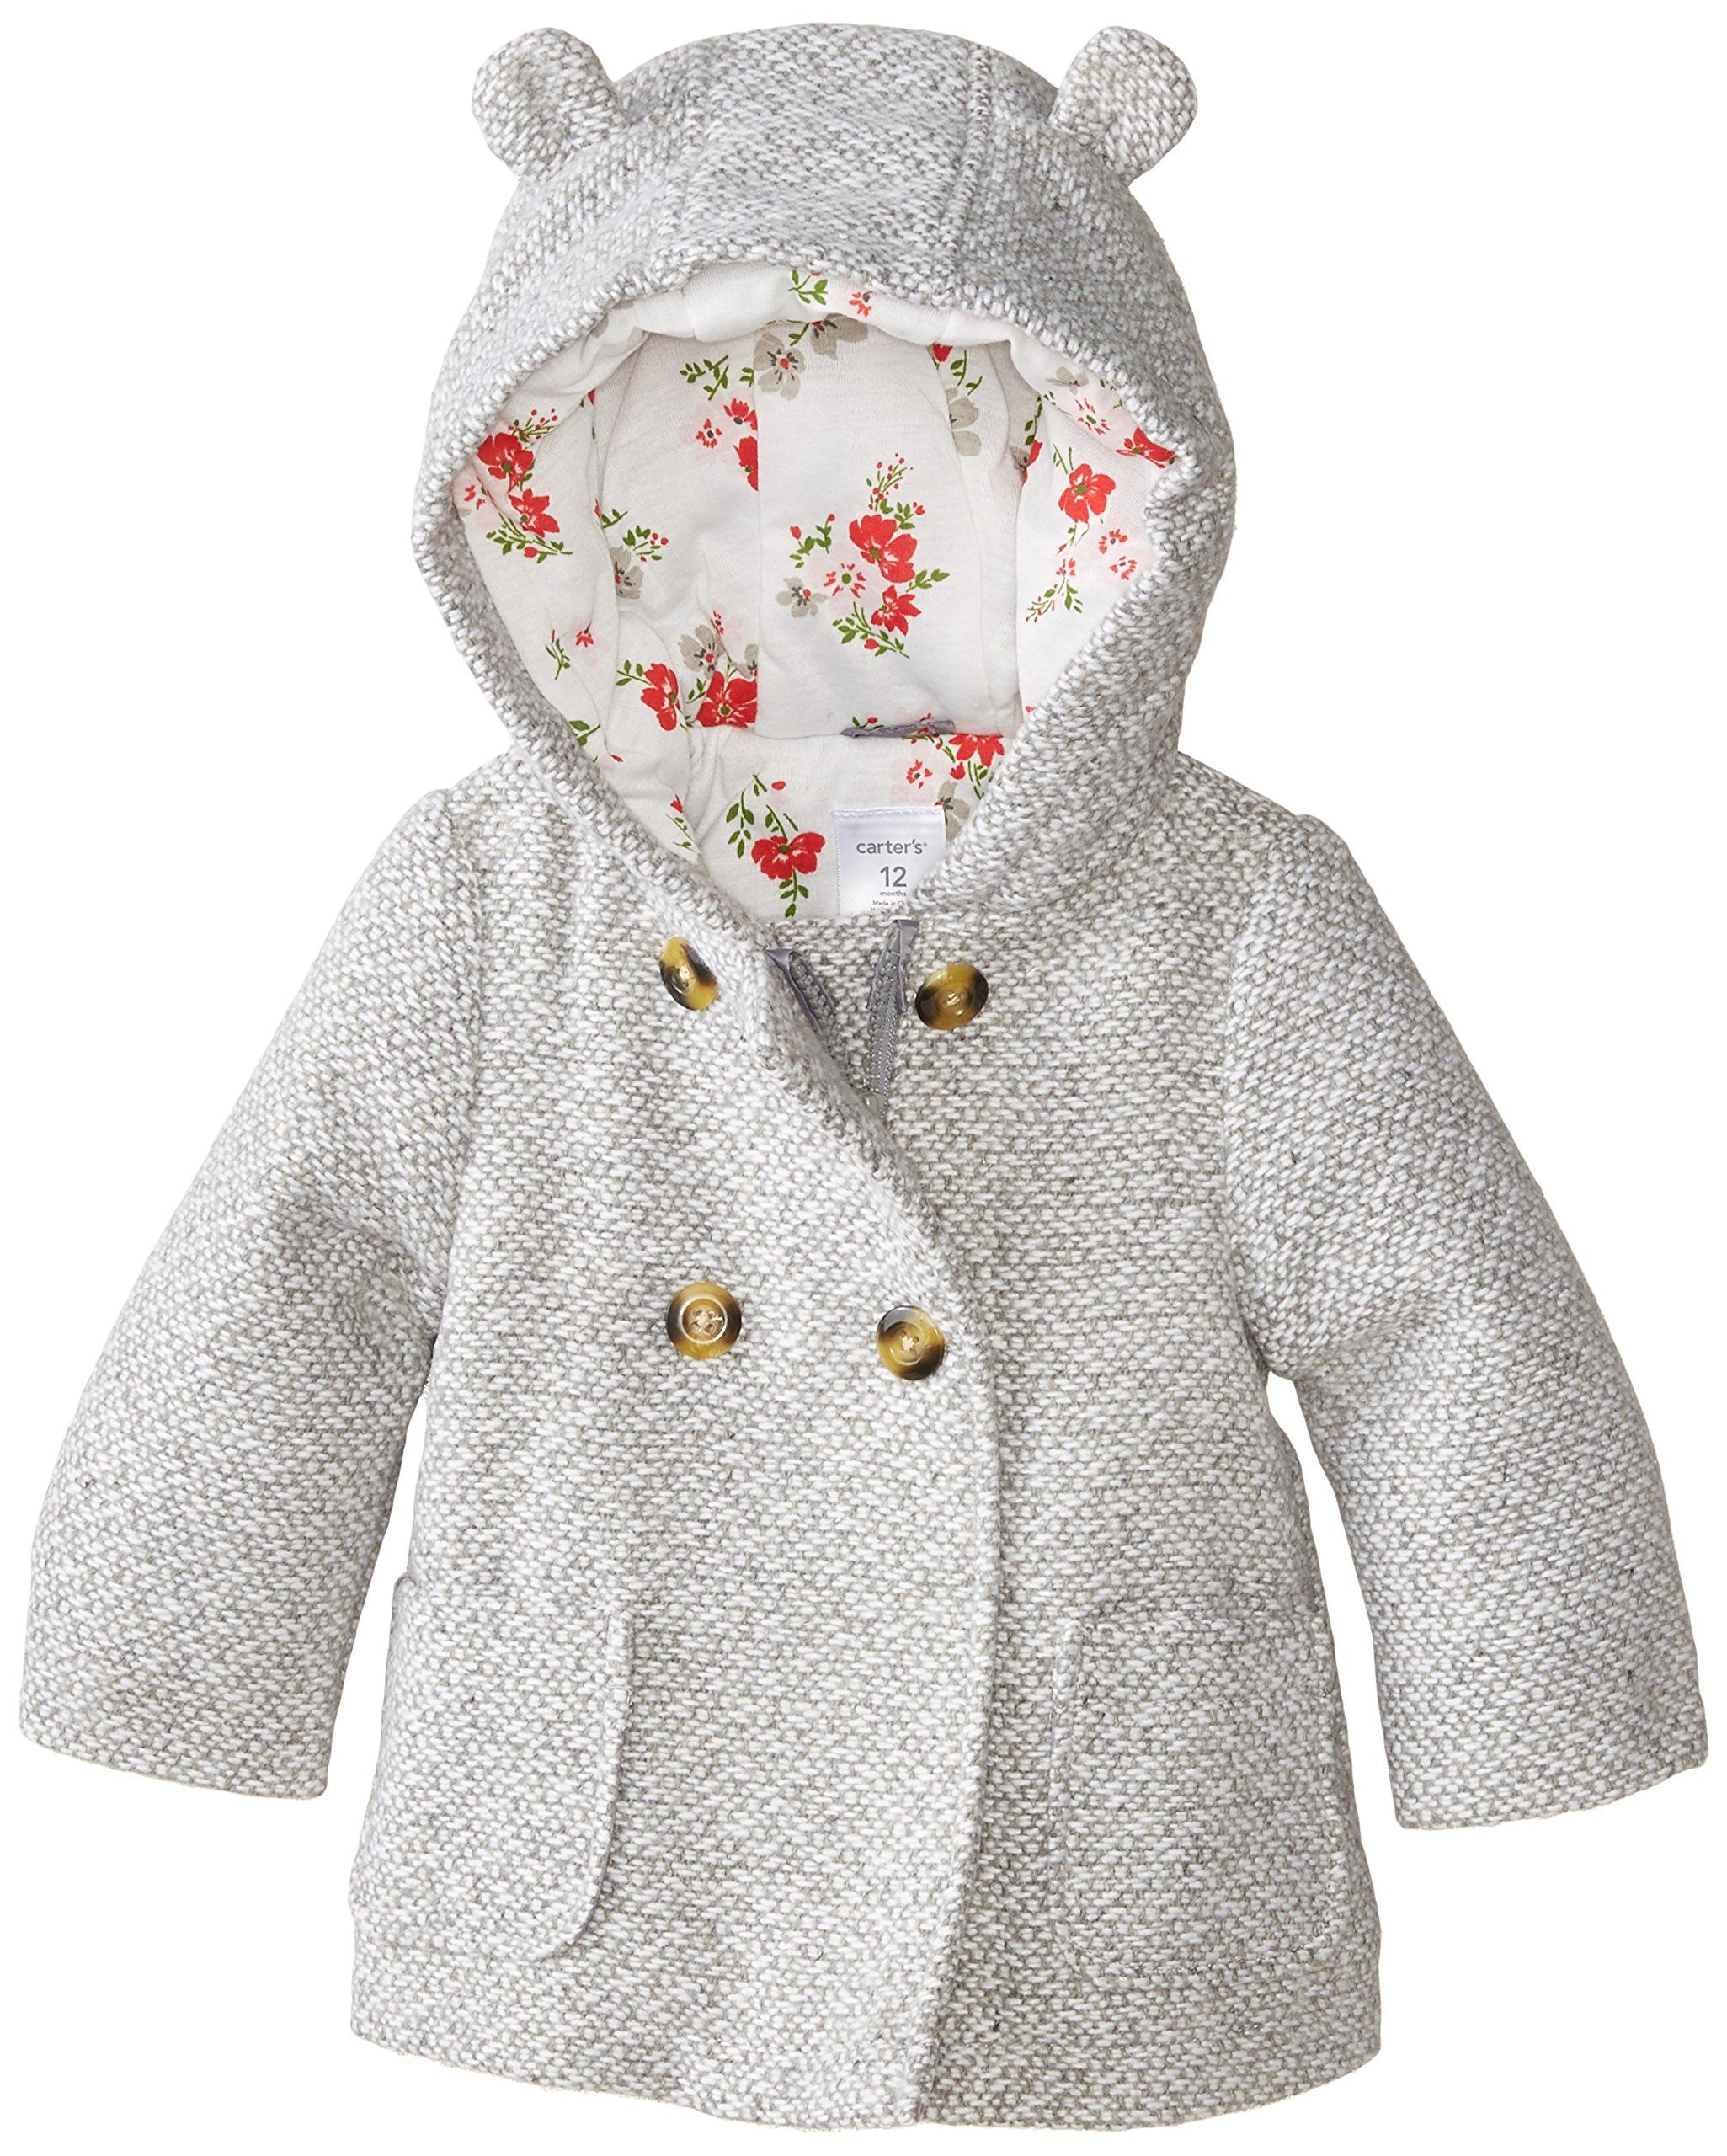 a8644b37f63 Amazon.com  Carter s Baby Girls  Infants Trans Single Jacket  Clothing